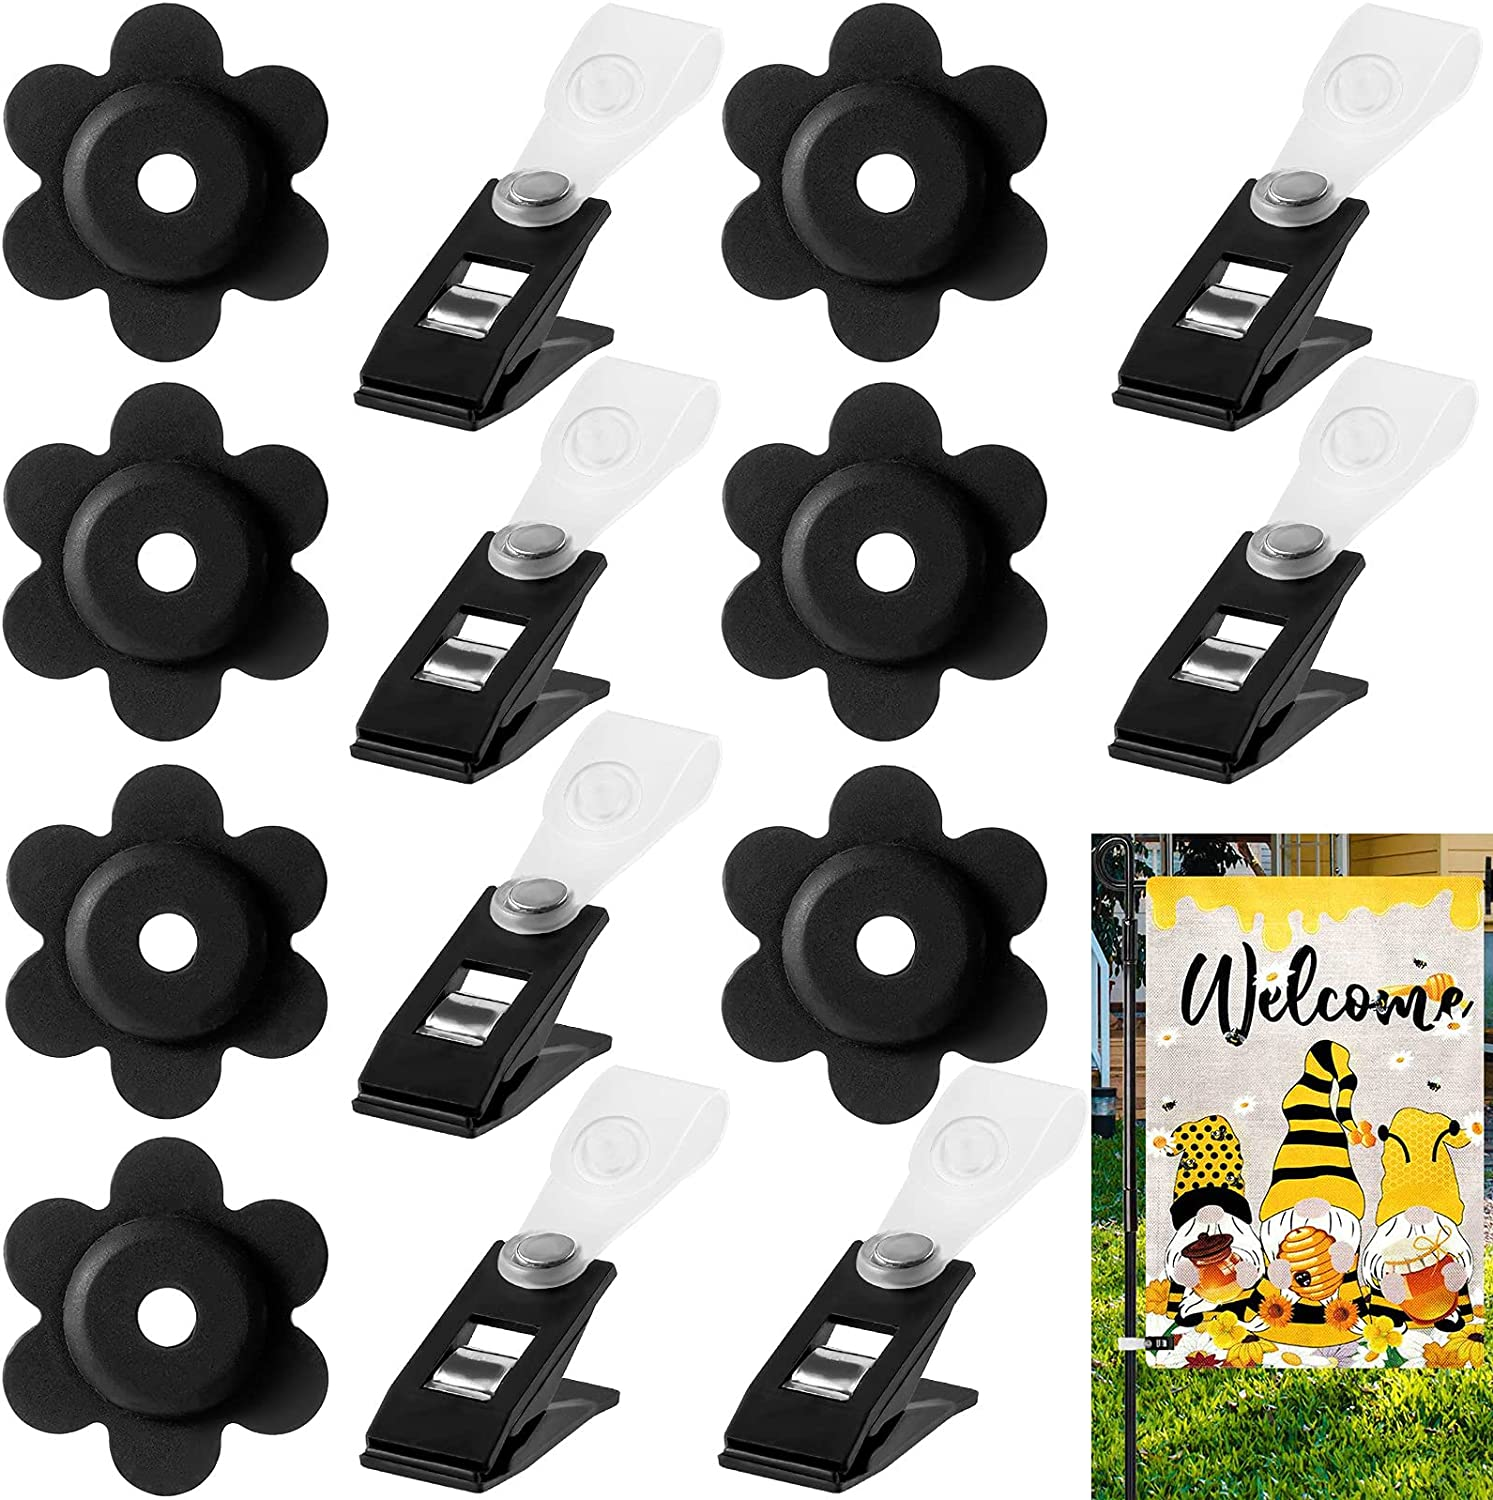 Garden Flag Stoppers - Anti Wind Garden Flag Clips 14 Pack Flag Rubber Stoppers and Clips Flower Yard Stoppers with Lawn Plastic Clips Flag Stops Accessories Hardware for Flag Poles Stand